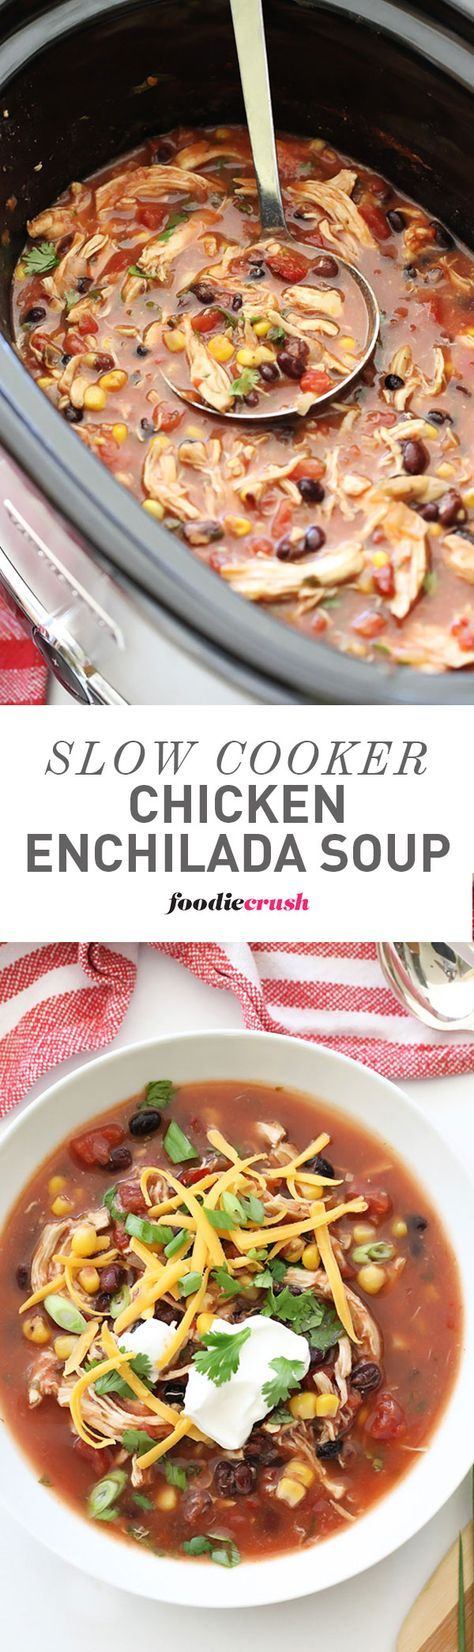 The crockpot cooked chicken came out perfectly tender and super easy to shred for an easy, healthy soup everyone loves! | foodiecrush.com